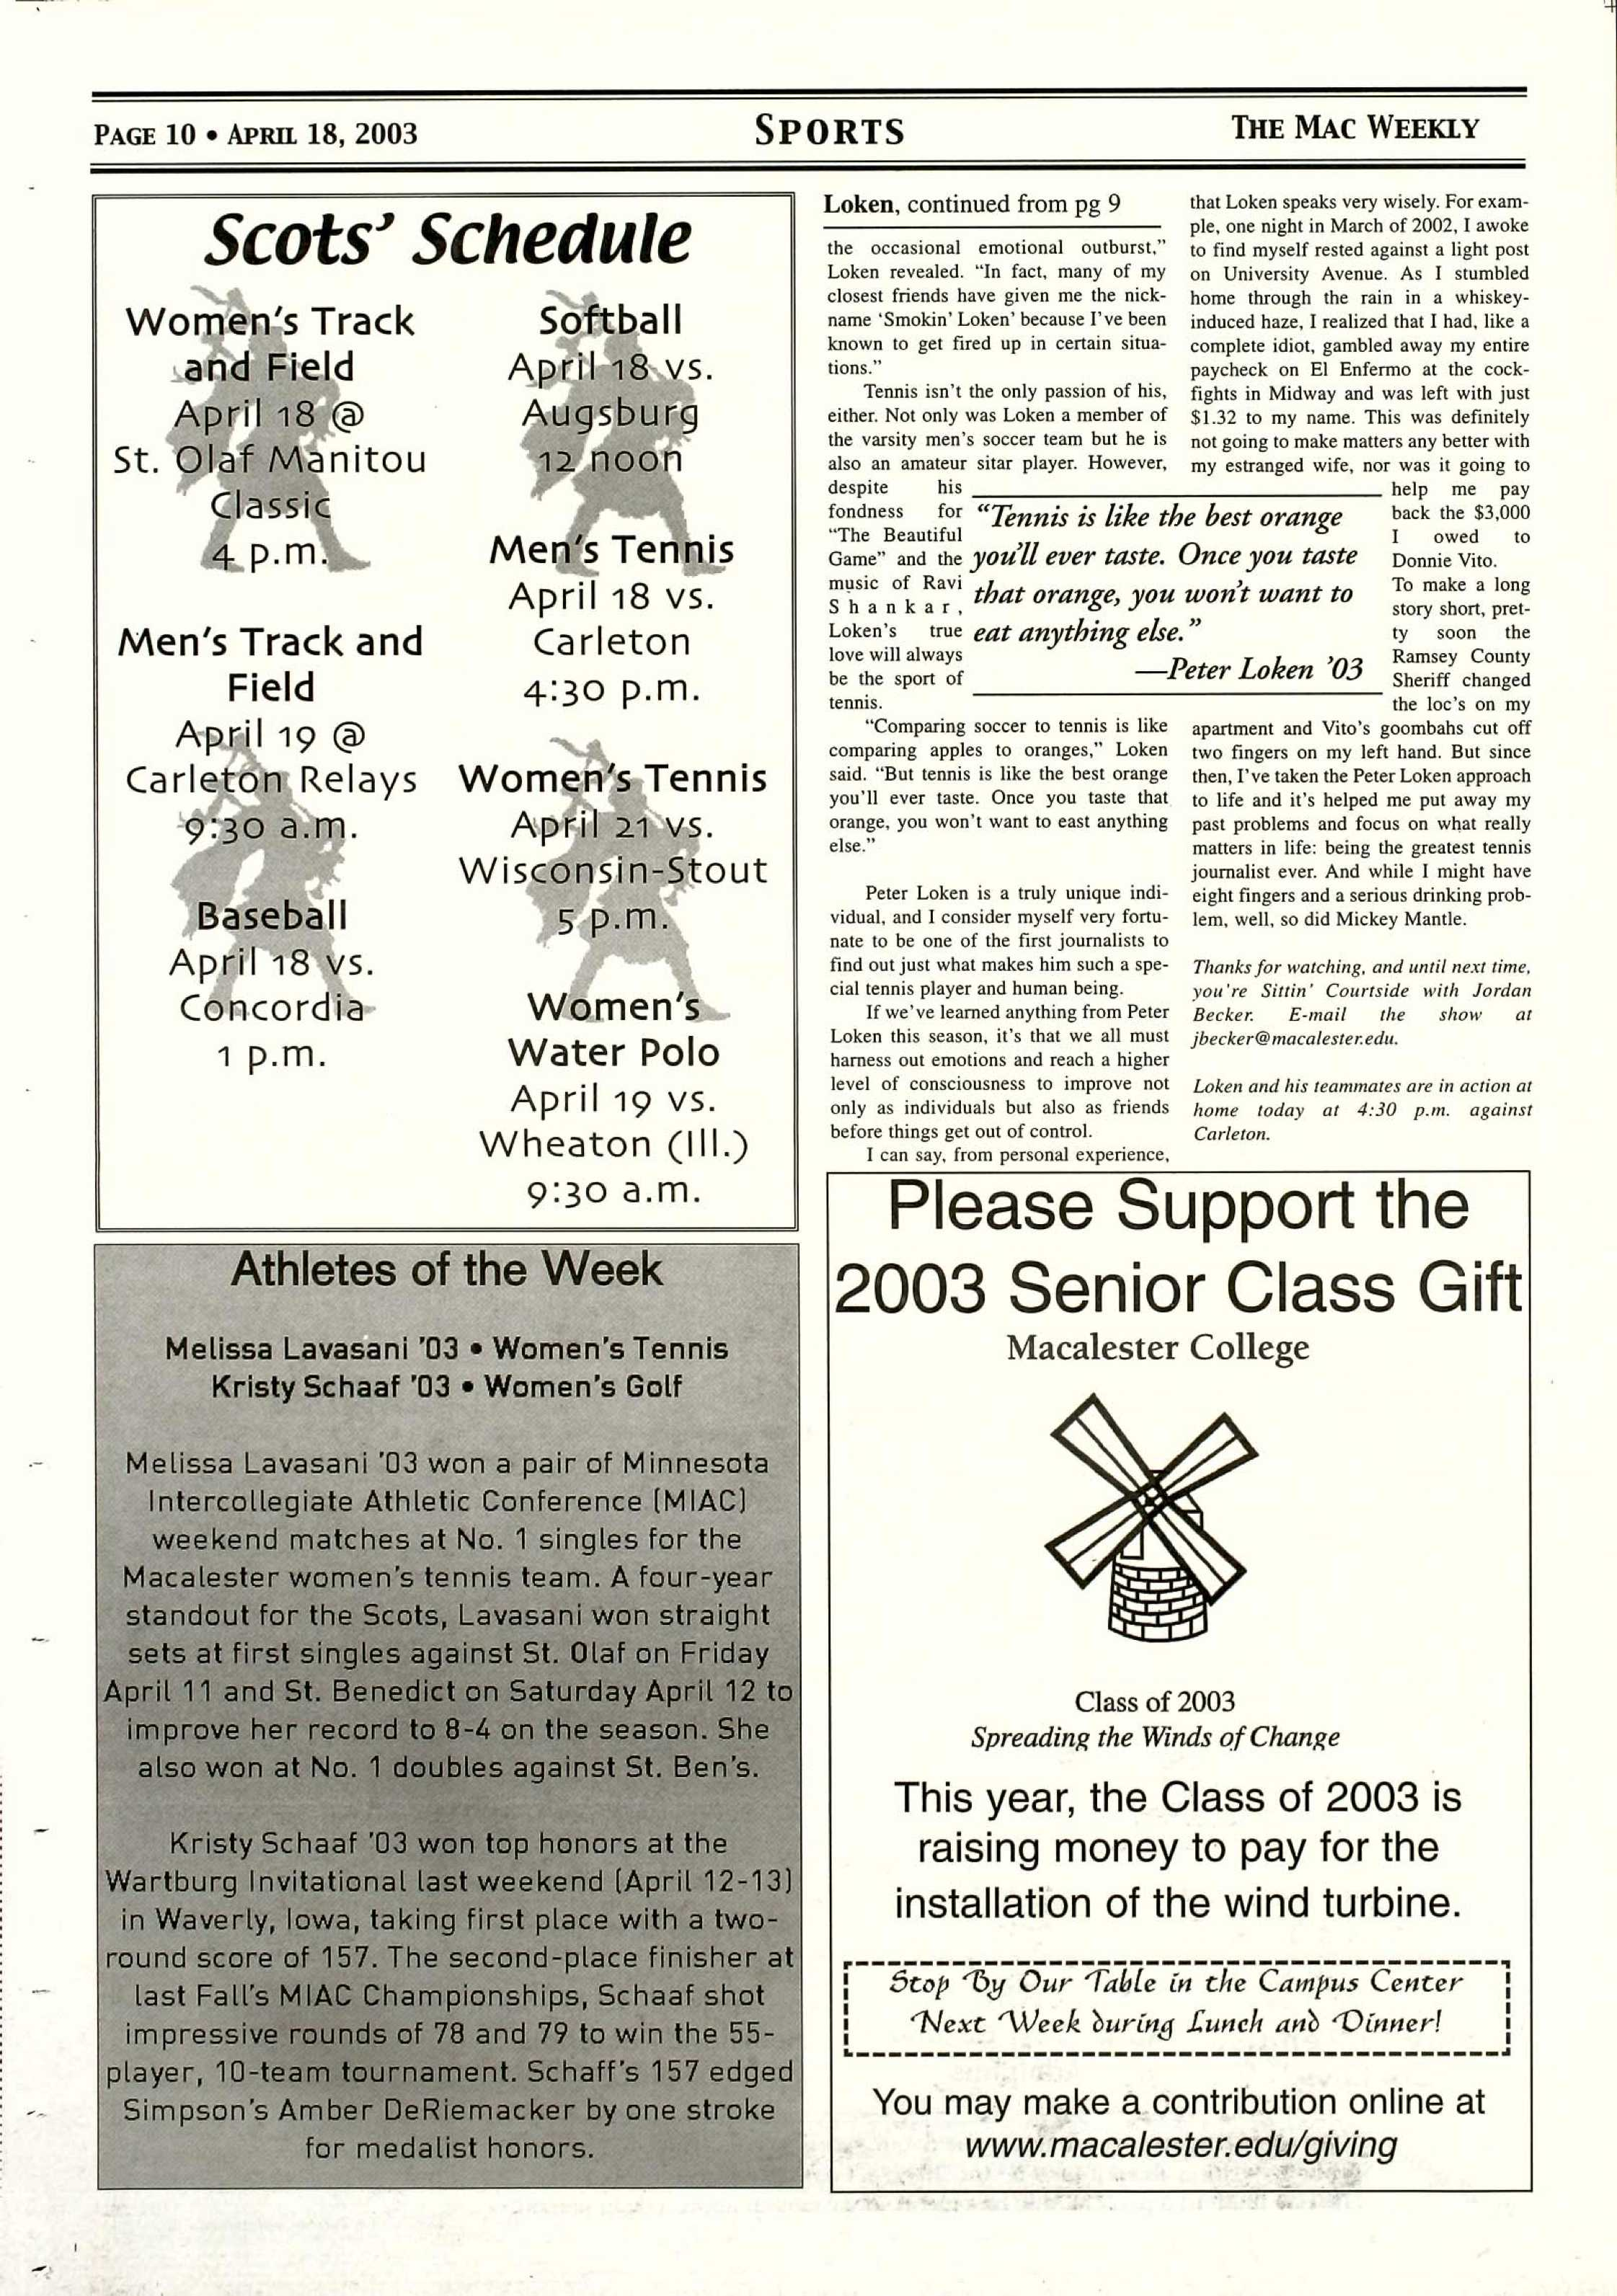 Ad from a 2003 Mac Weekly issue. Photo courtesy of Macalester Archives.